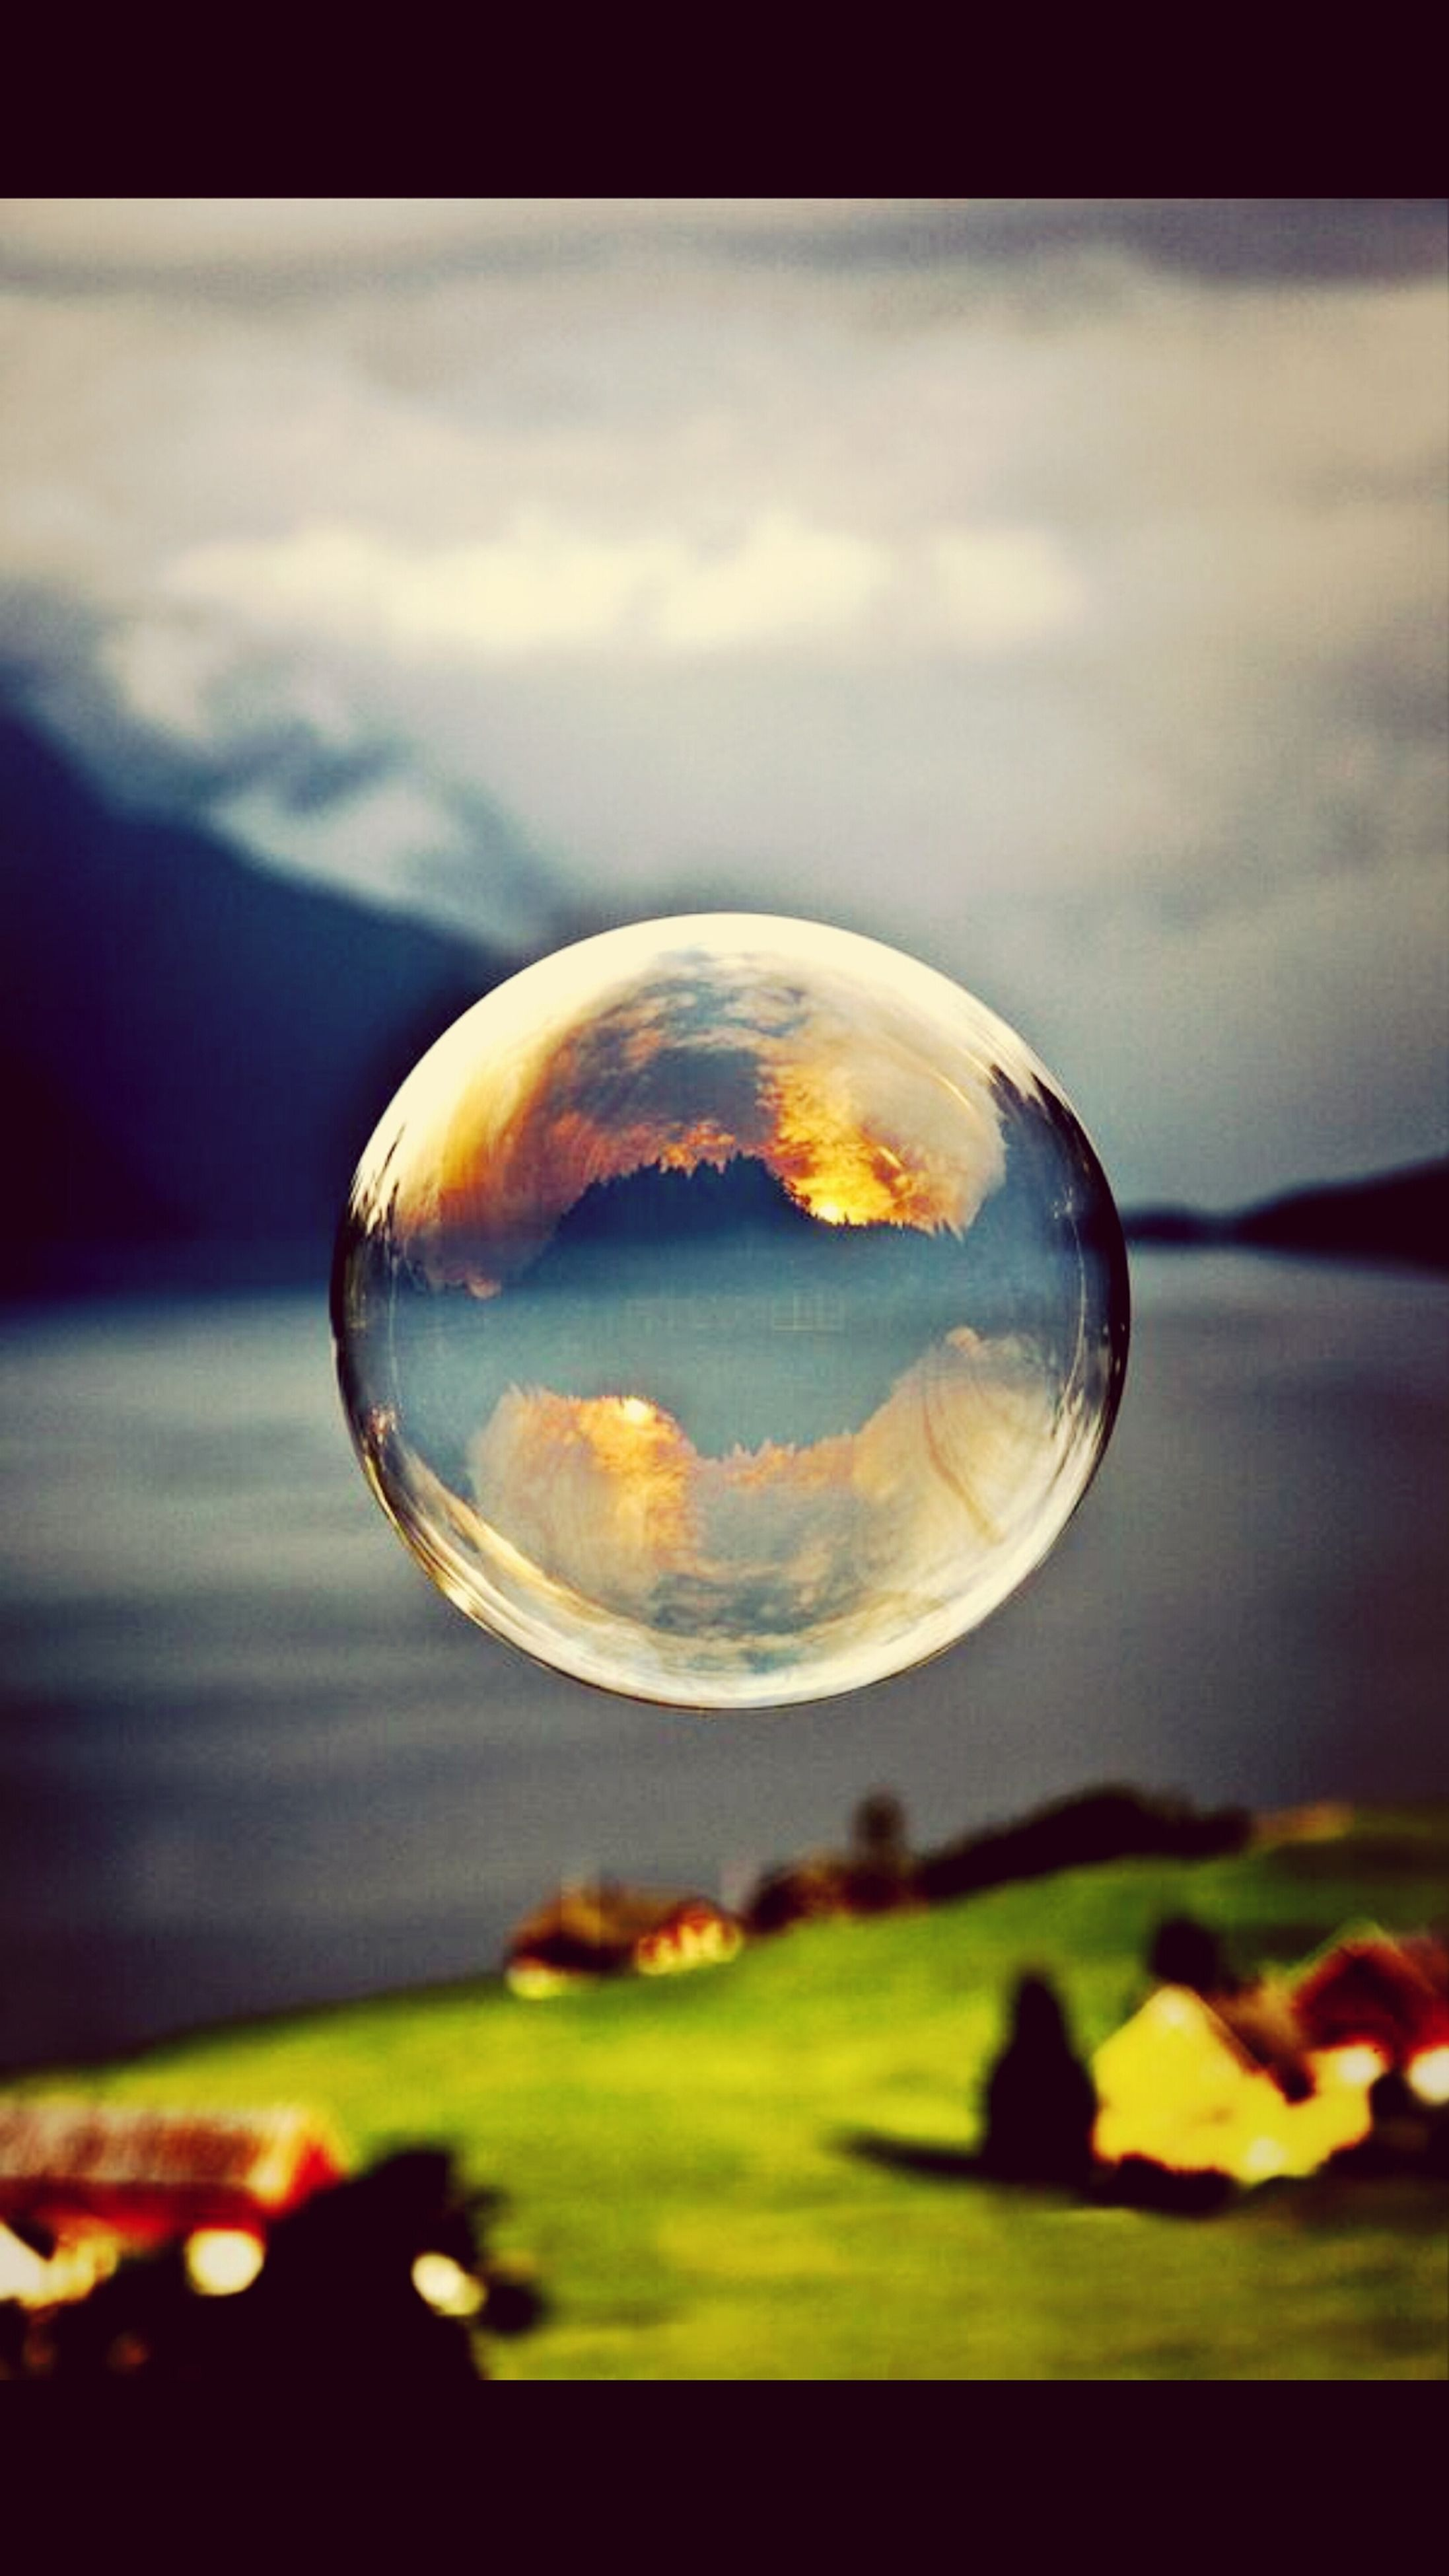 transparent, close-up, focus on foreground, sky, sphere, glass - material, reflection, fragility, nature, water, beauty in nature, drop, cloud - sky, bubble, tree, circle, selective focus, tranquil scene, no people, tranquility